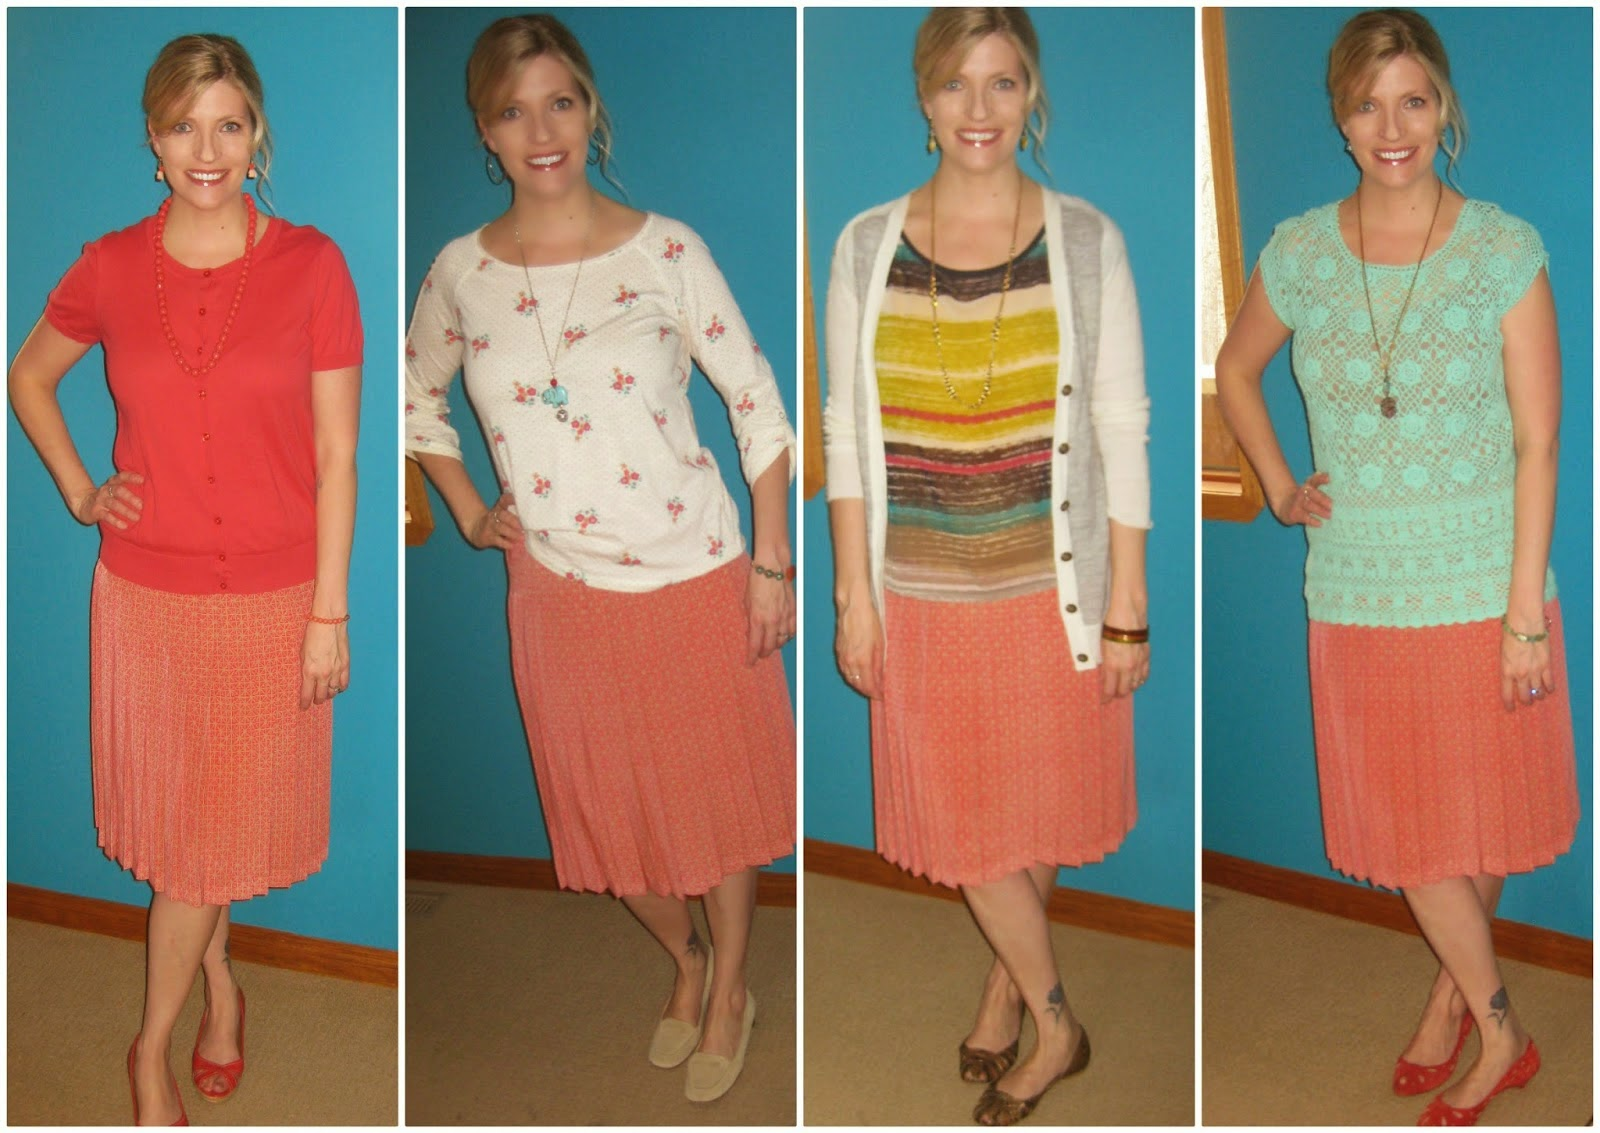 VV Boutique Style: Paisley and the Mild Mix